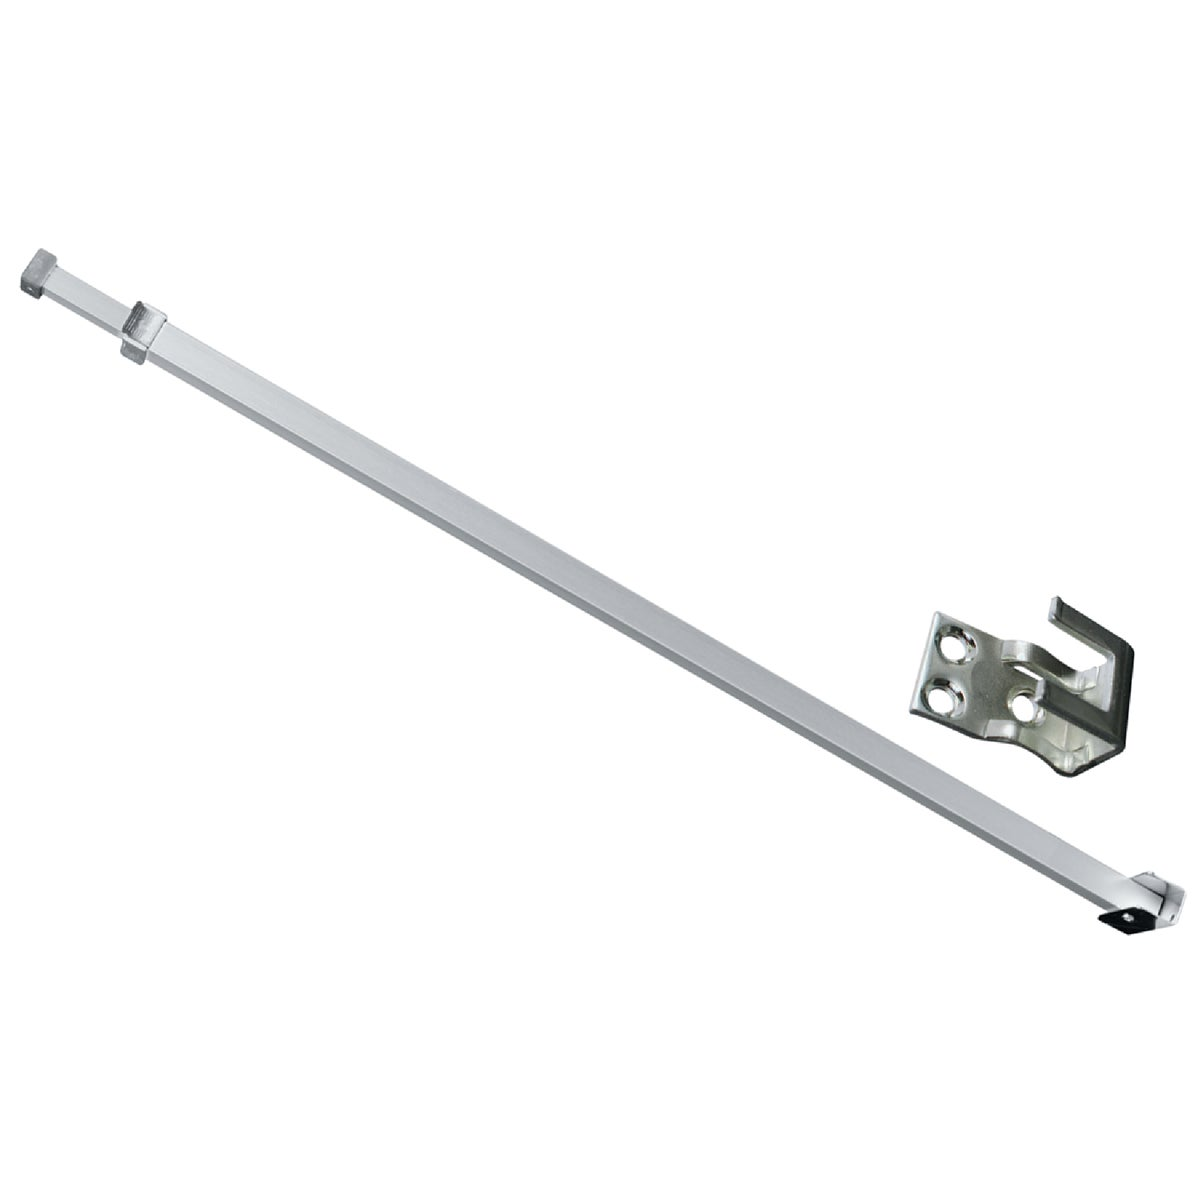 SLIDING DOOR BAR LOCK - U 9920 by Prime Line Products